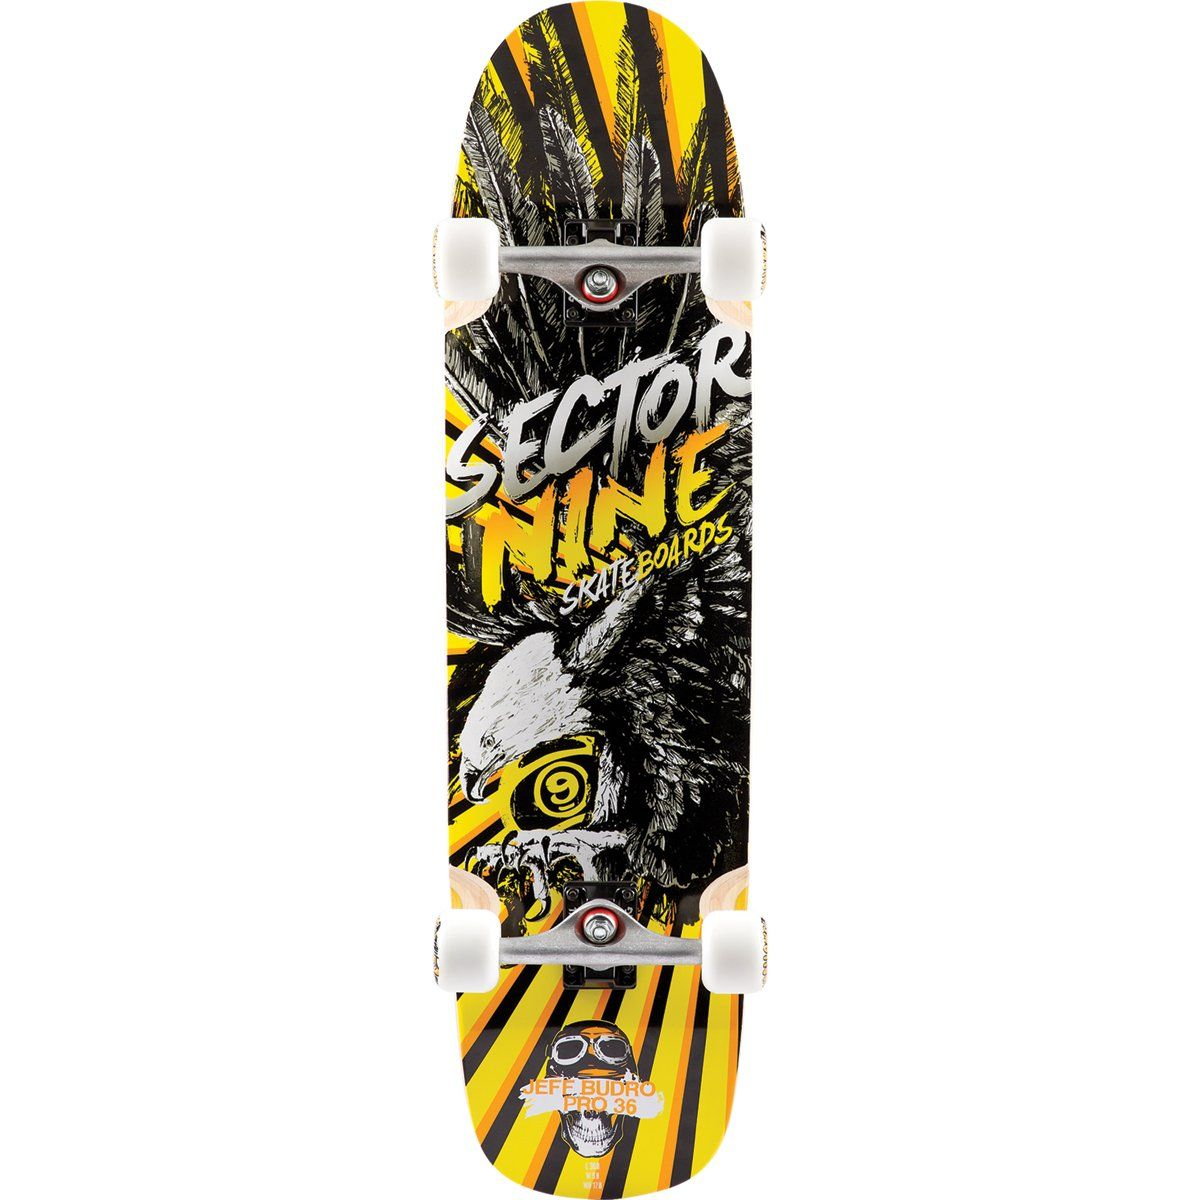 "Sector 9 Budro Pro Complete Skateboard, Yellow. Assembled with: 9.0 inch Gullwing shadow trucks, 61mm 78A marshmallows wheels, ABEC 5 grease ball bearings, erg grip tape. Constructed with: 7 piles of cold pressed Maple, solo pro mold, top mount. Dimensions: 36.25"" length x 9.25"" width x 17.0"" Wheel-Base. Riding style: free ride, Park. Wheel Colors may vary."